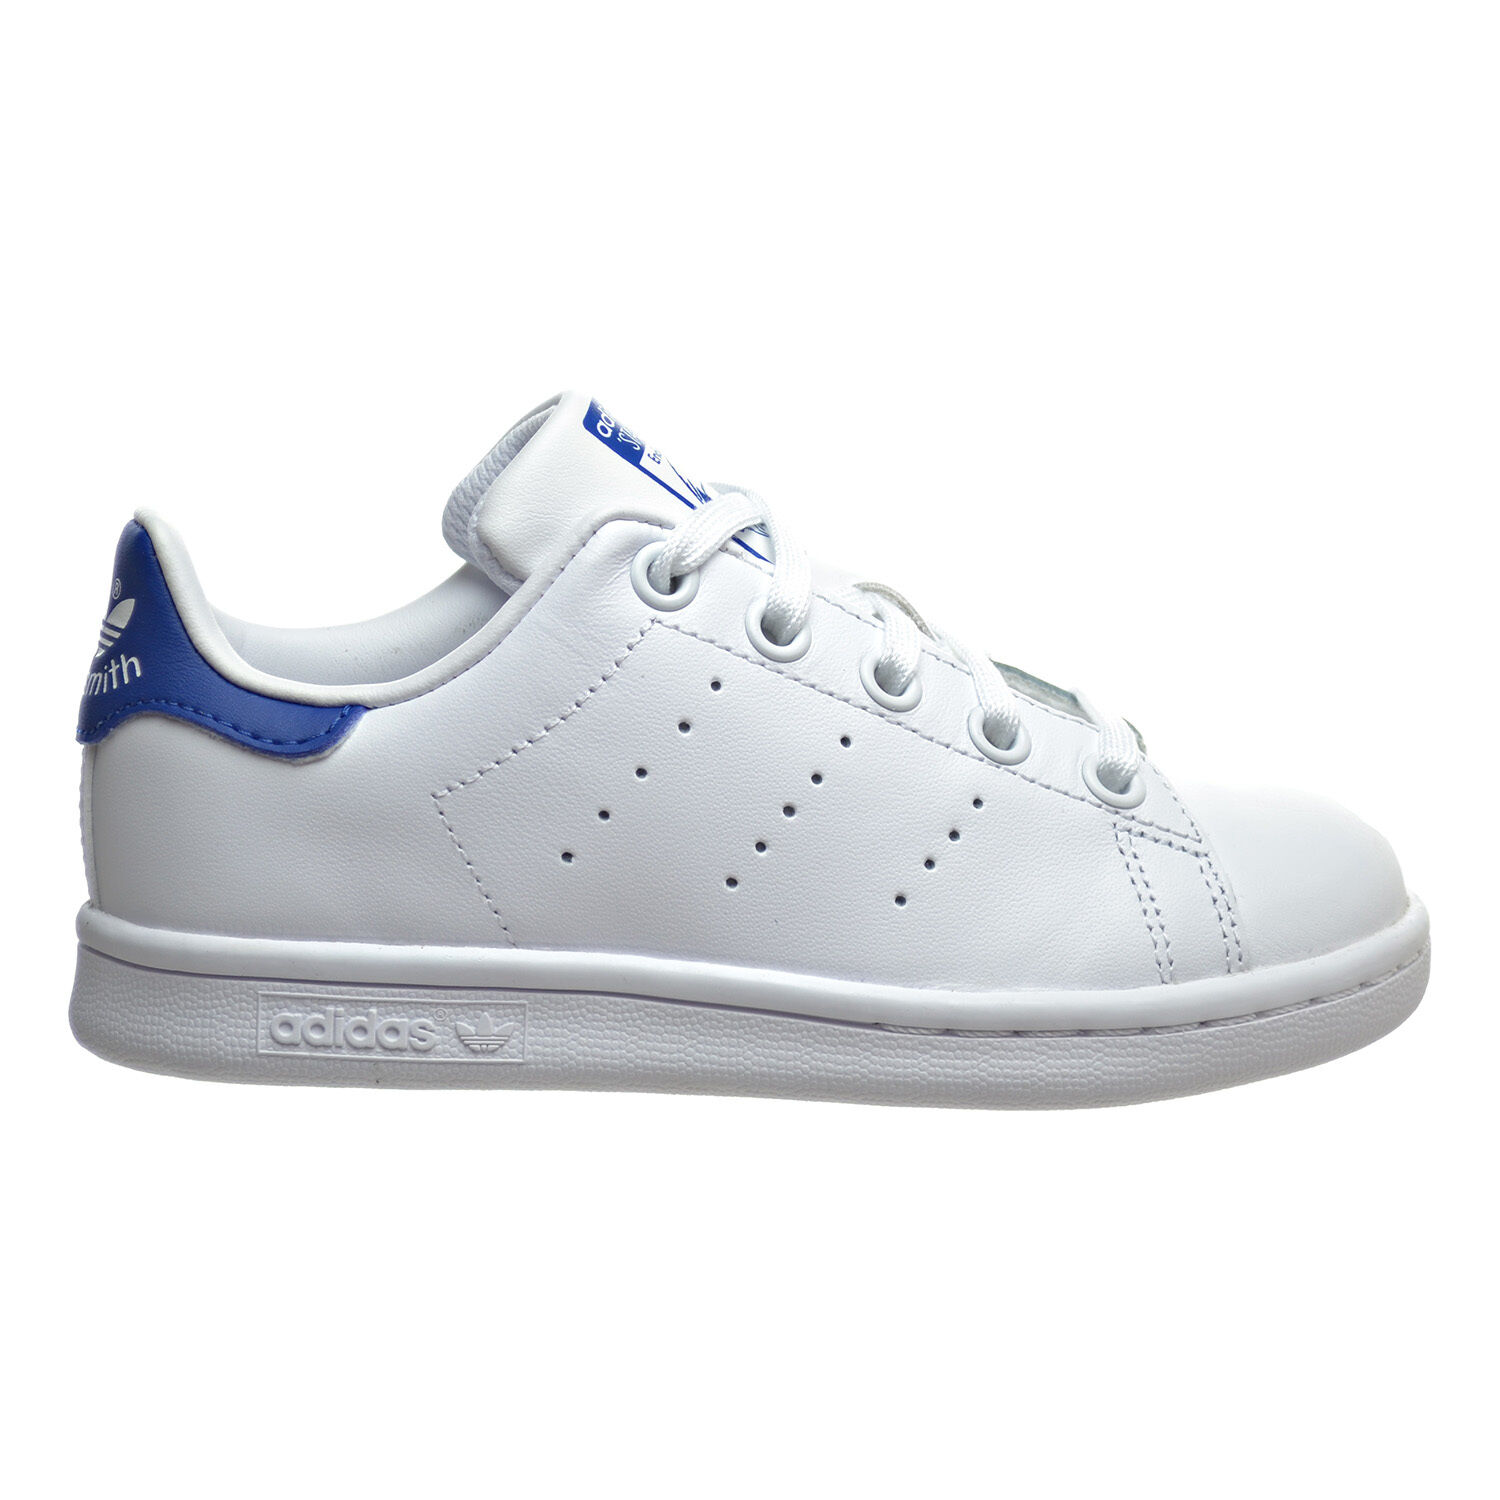 adidas Stan Smith FTW Zapatos Hombre' Running Blanco FTW Smith / Bb0694 1 3d3c42